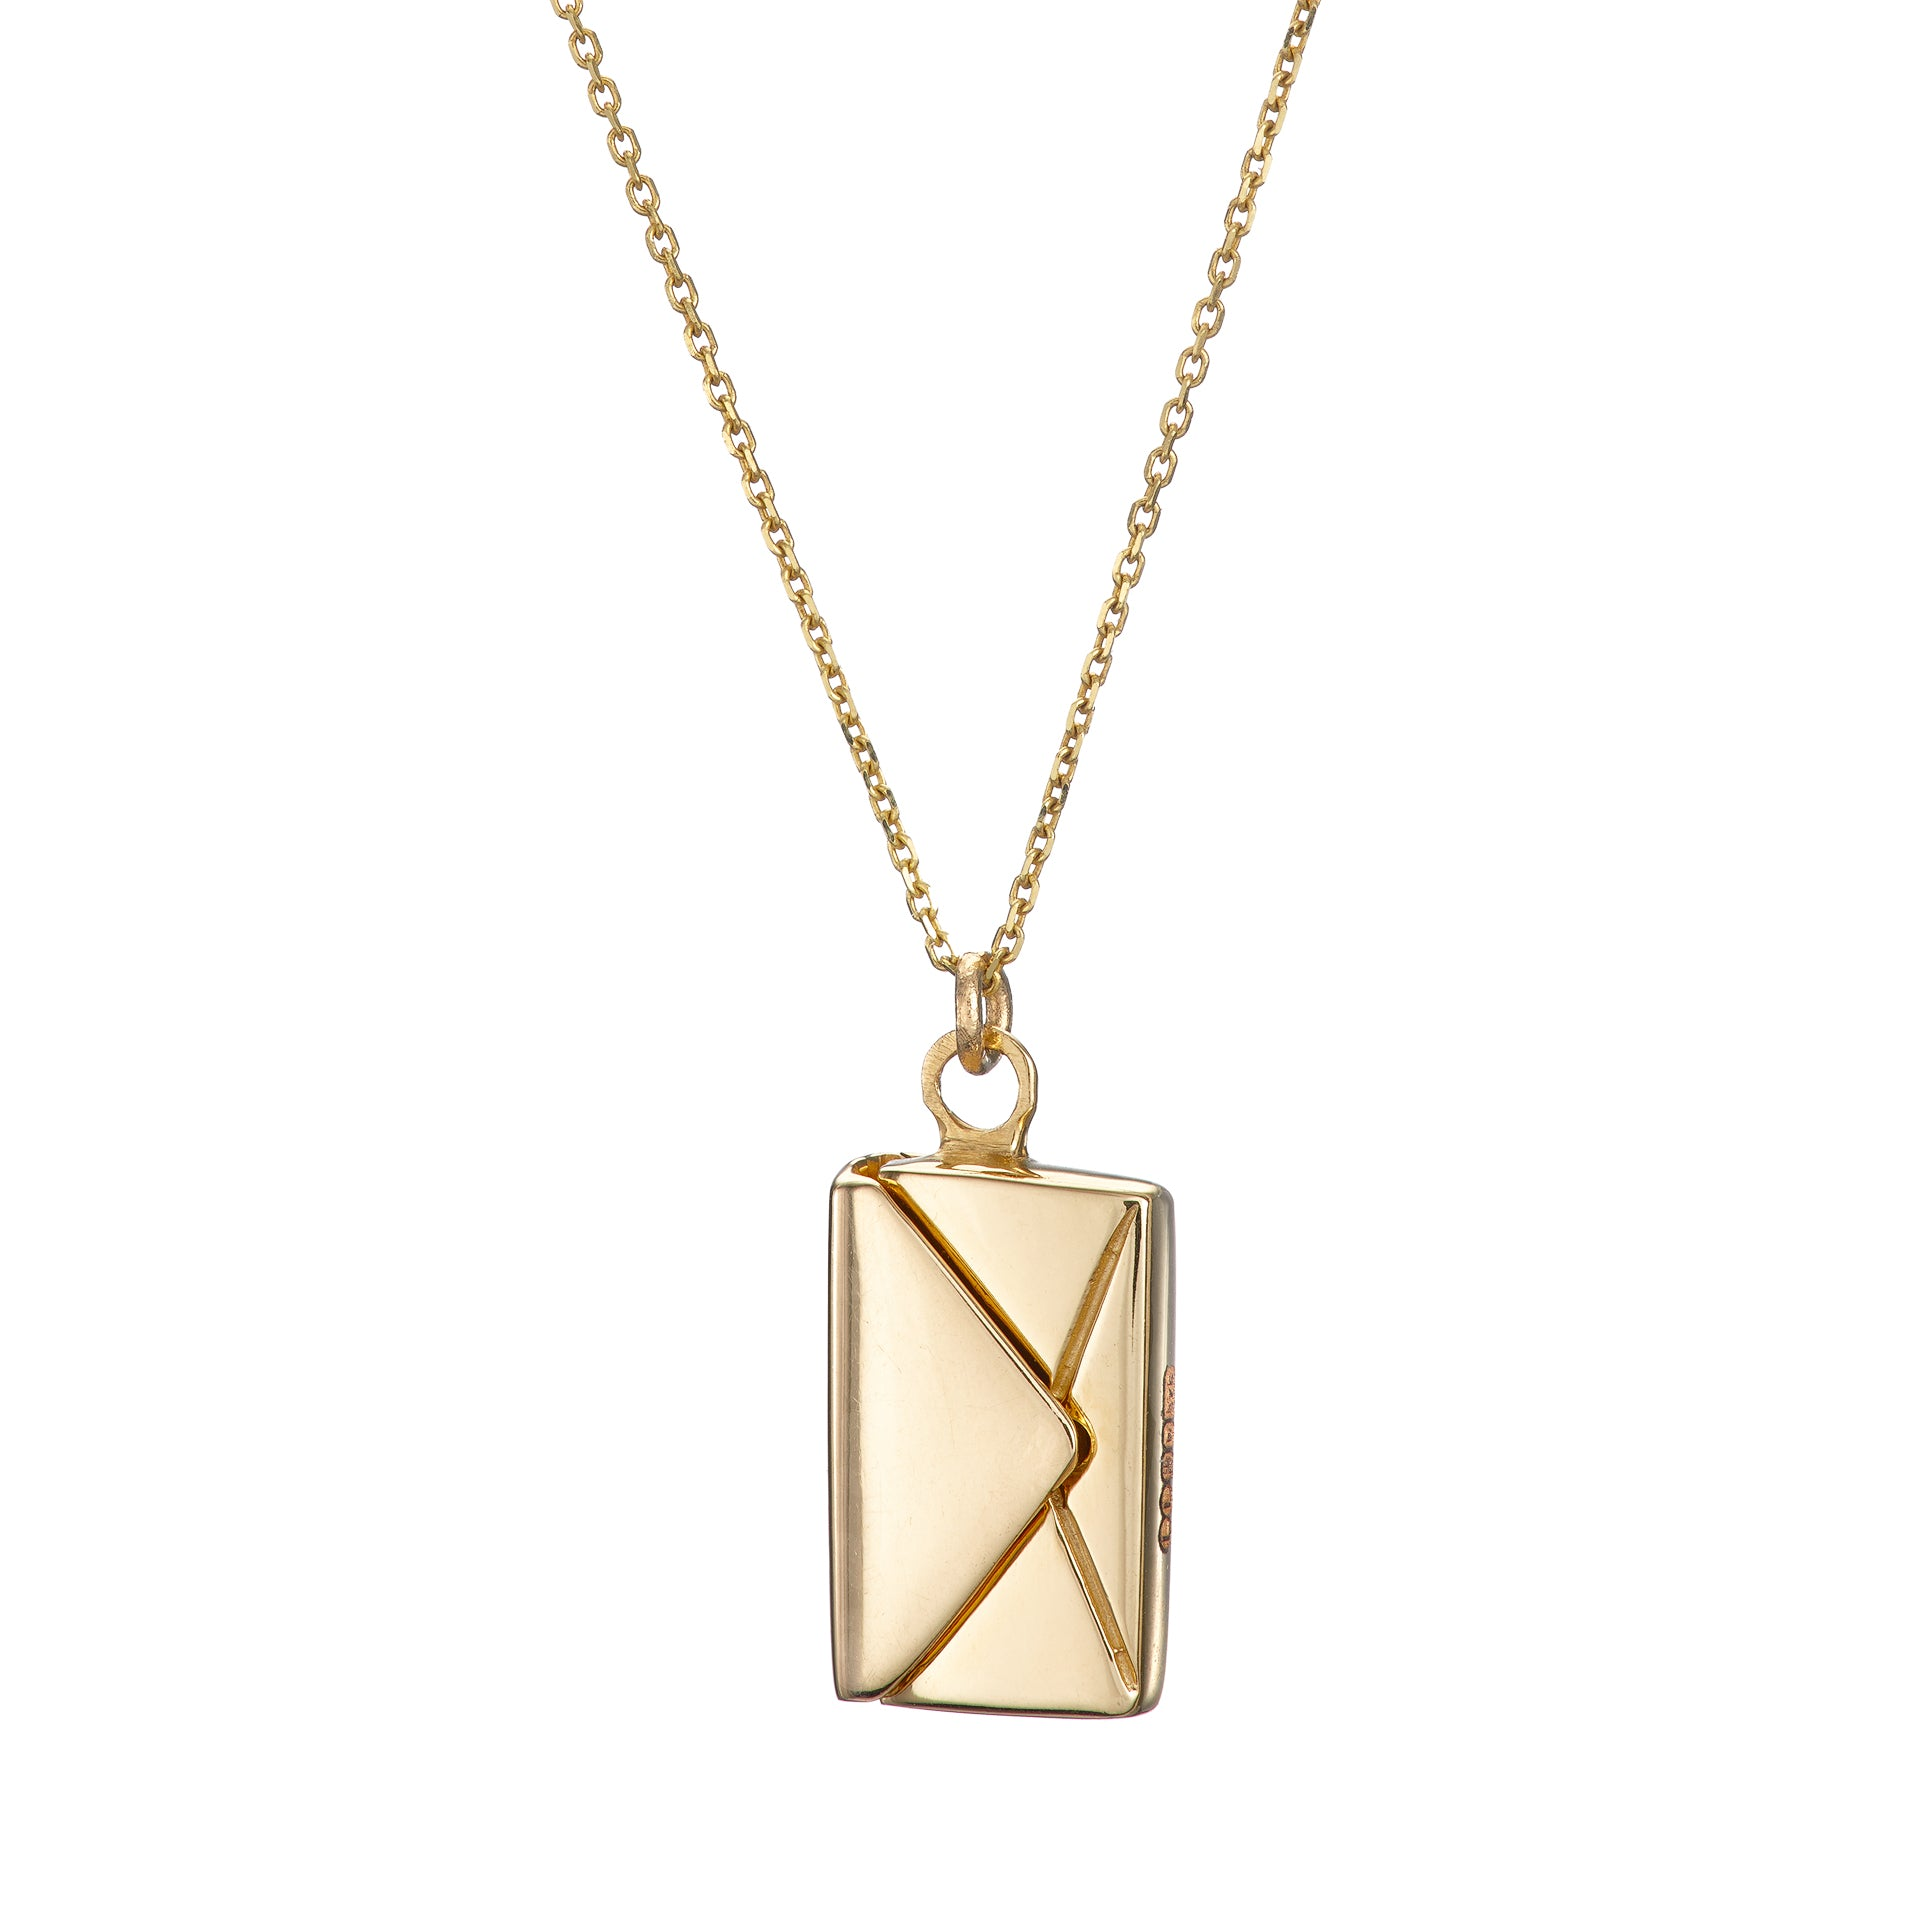 Bespoke Signature Envelope Necklace - 18ct Gold